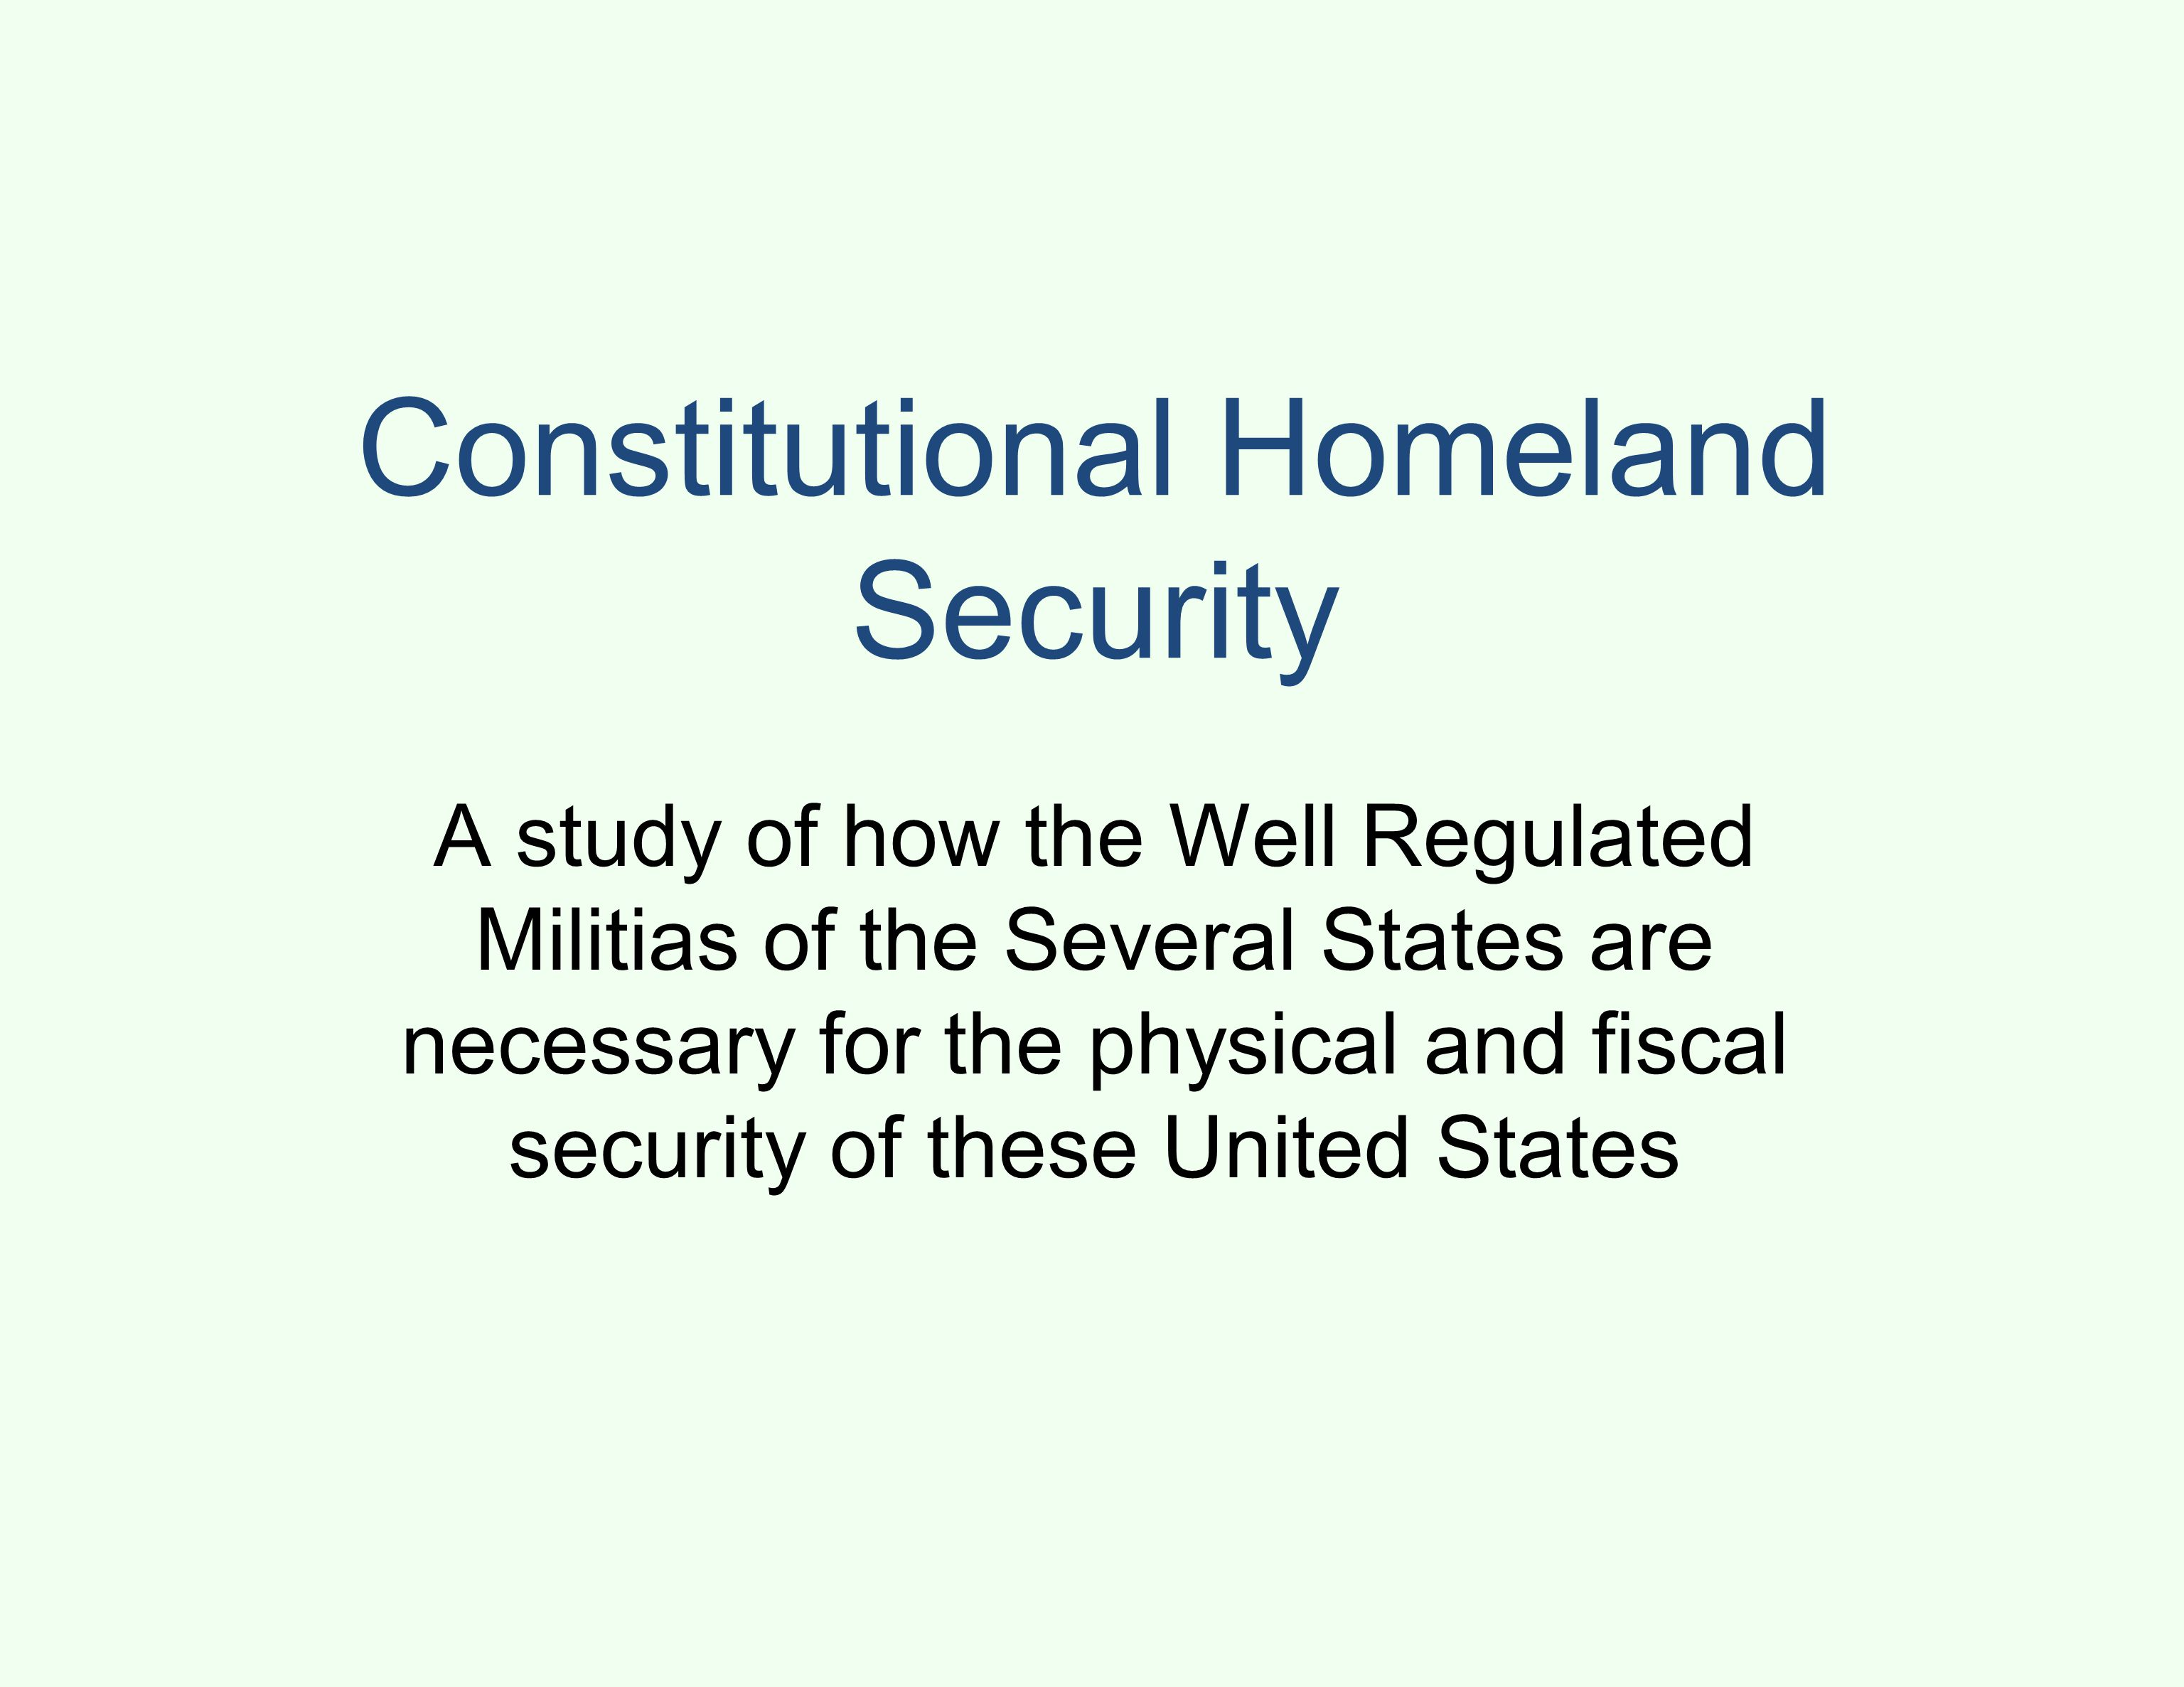 Constitutional Homeland Security A study of how the Well Regulated Militias of the Several States are necessary for the physical and fiscal security of these United States